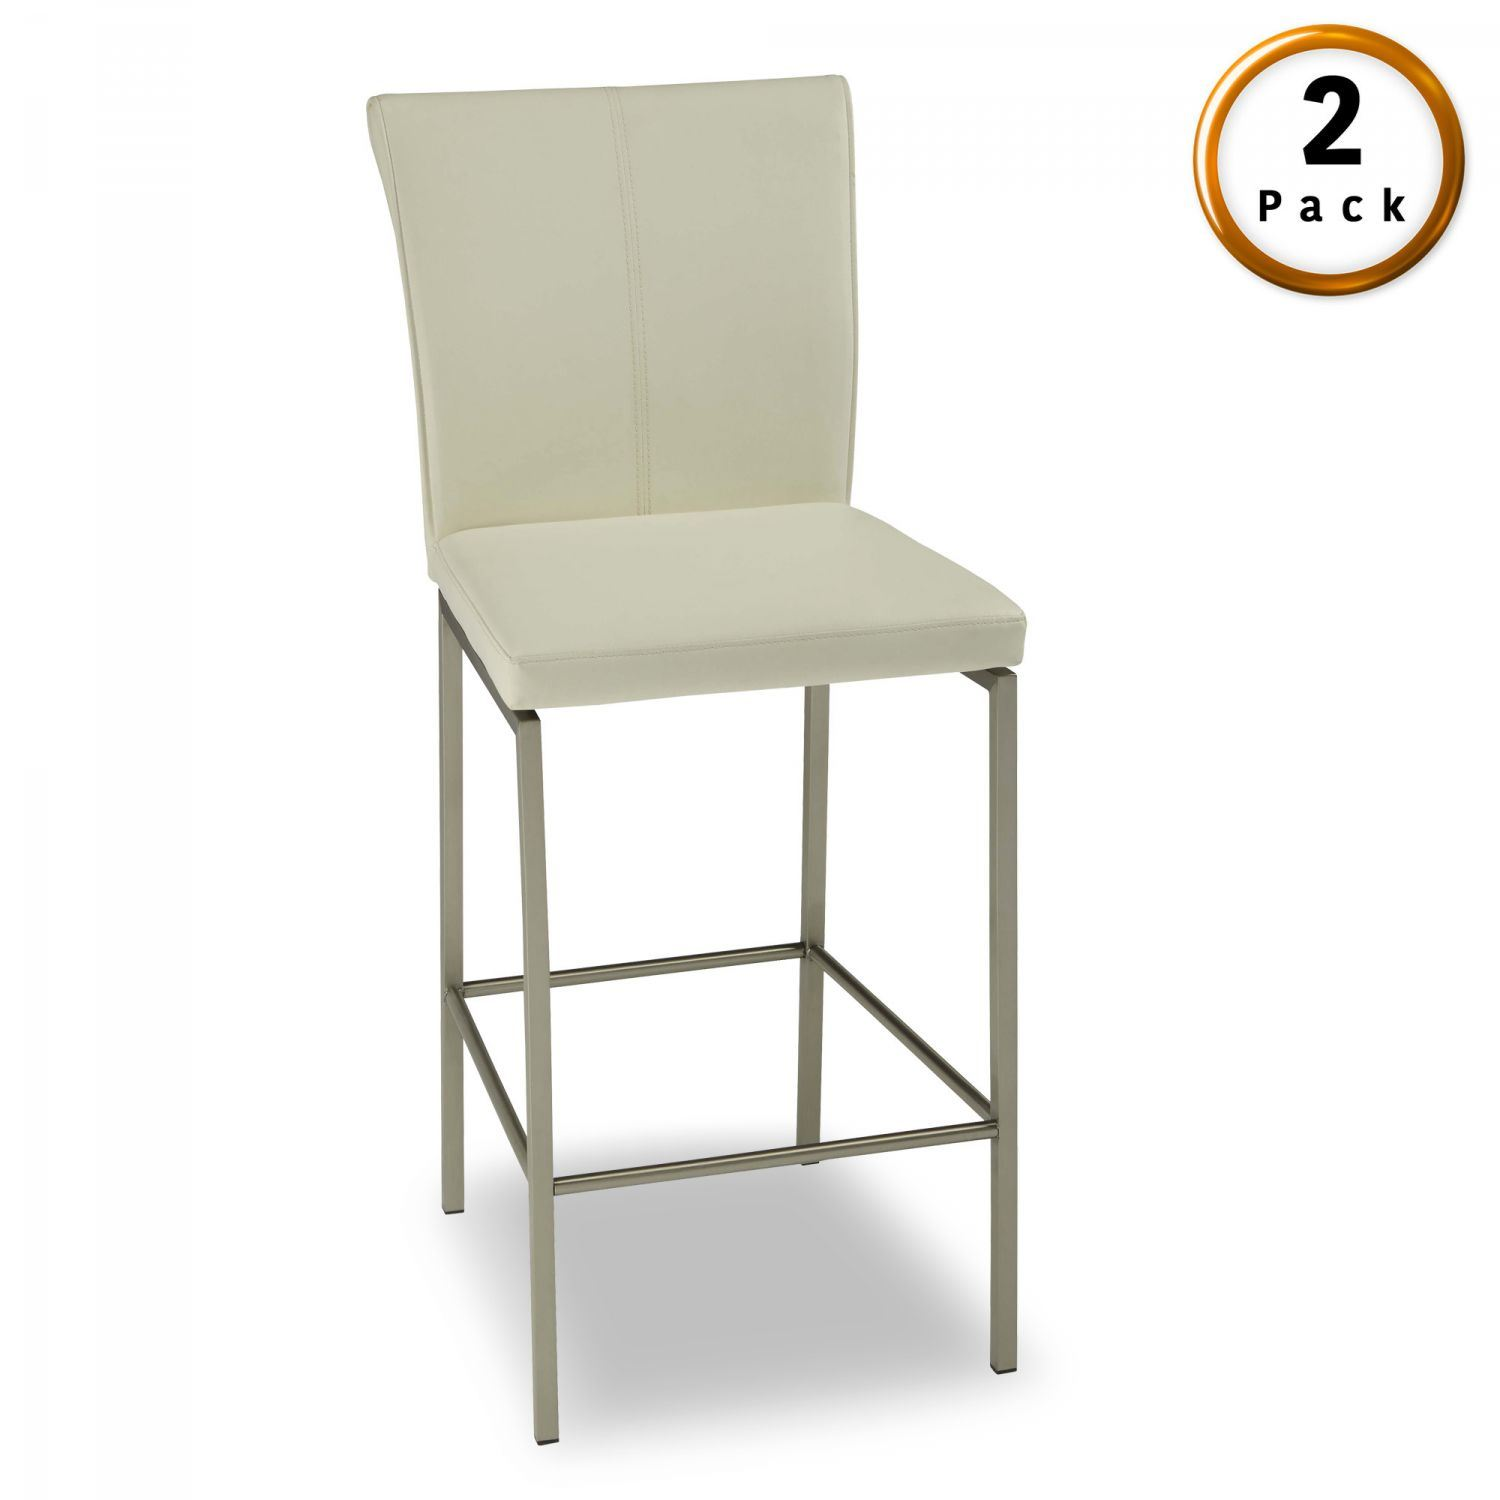 Cheyenne Metal Counter Stool 2 Pack D C1x1762 Fashion Bed